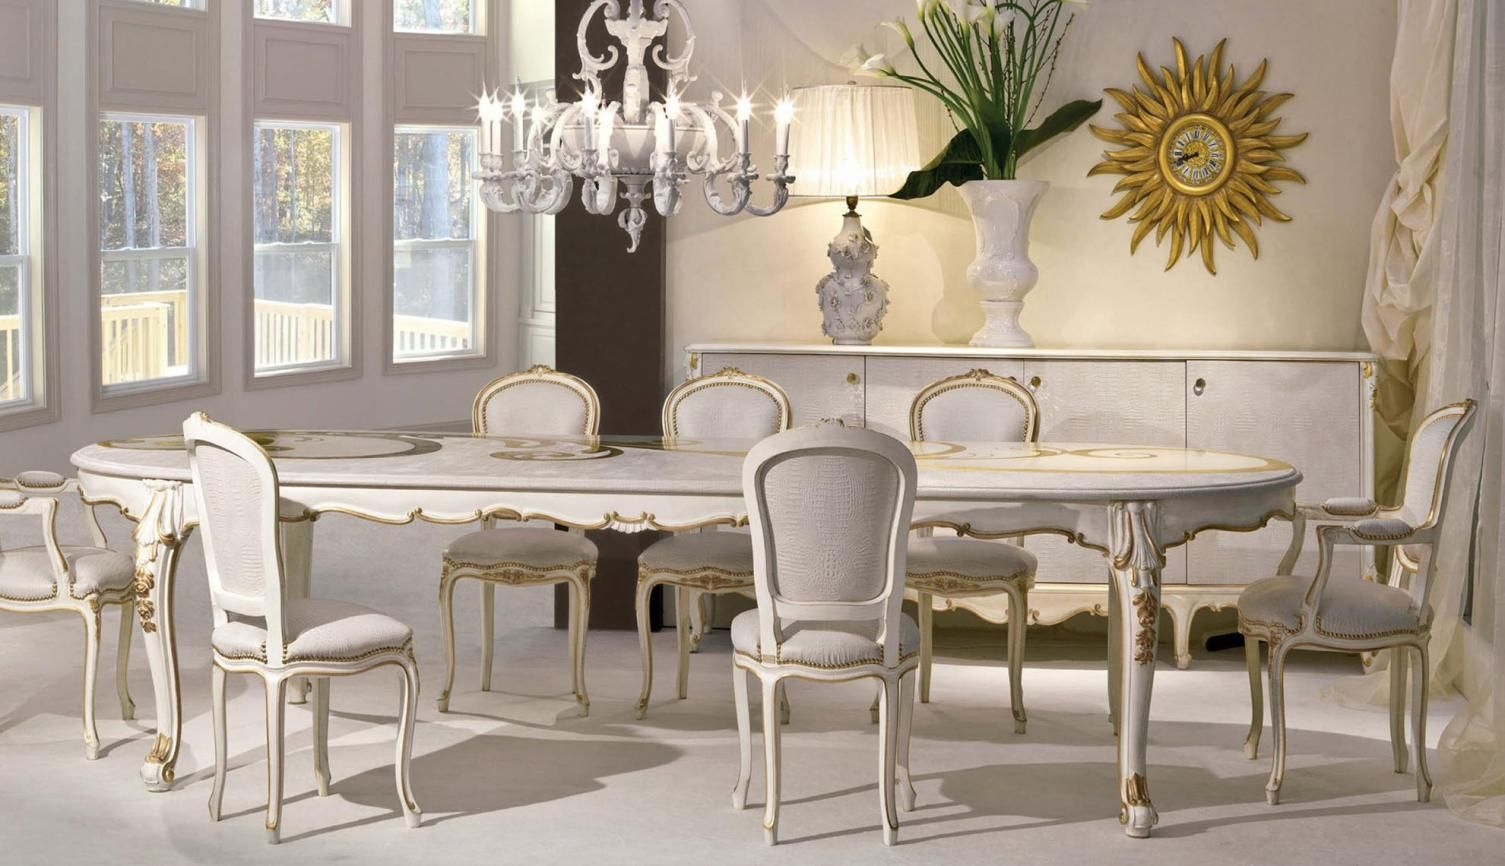 dining room trends 2017 dining chair the best 2017 dining room design trends to rock your space modern